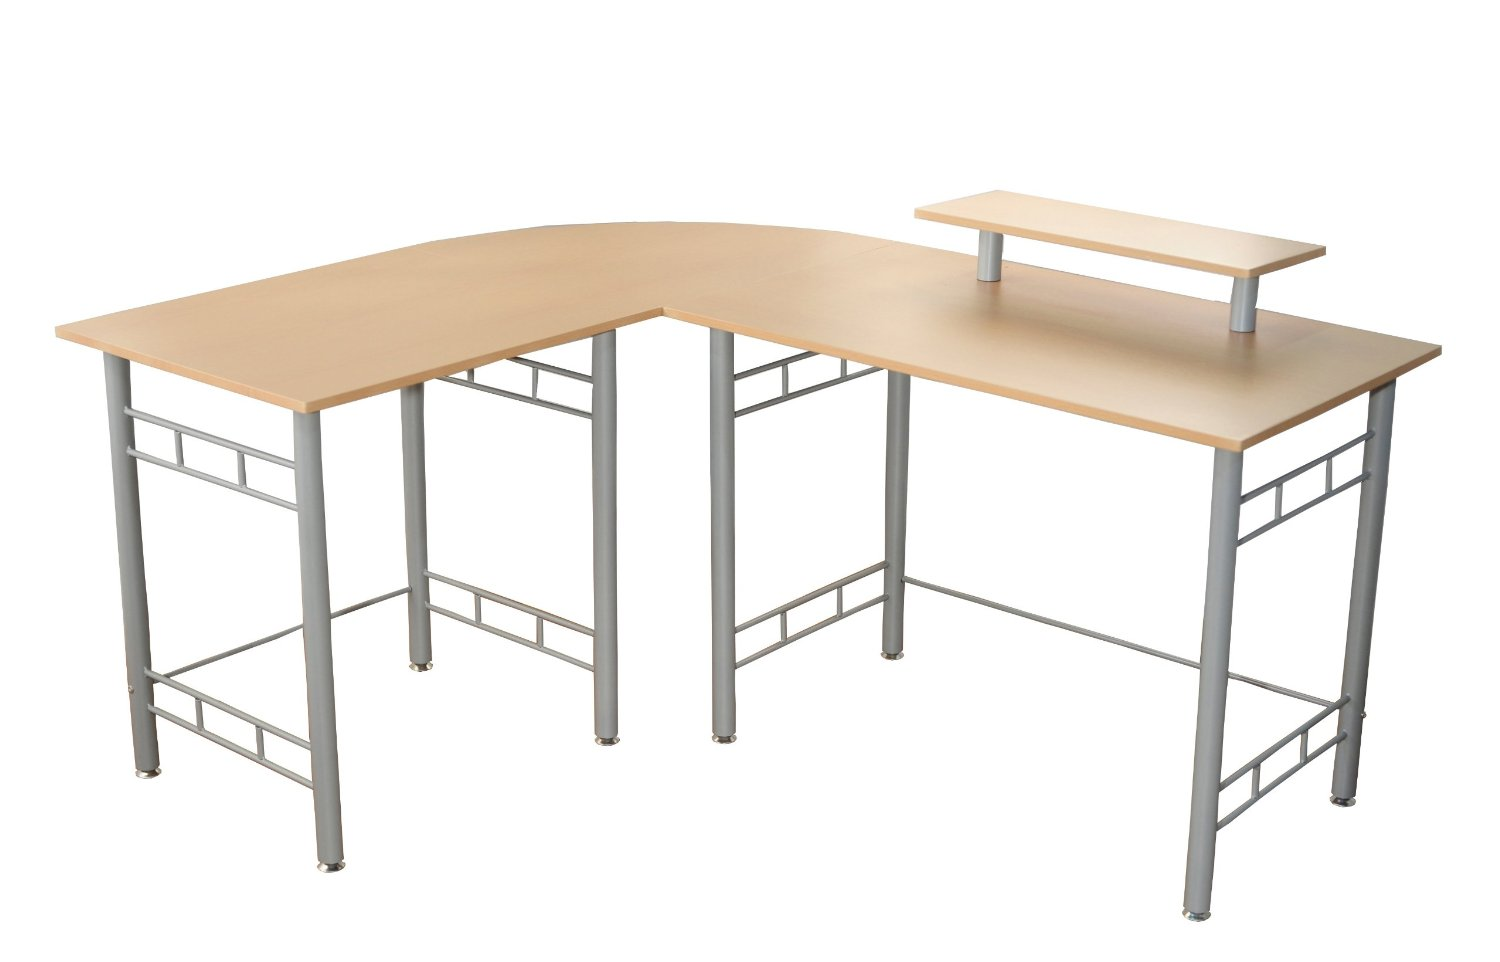 Target Marketing Systems Modern L-Shape Wrap Computer/Writing/Office Corner Desk With Raised Hutch For Computer Monitor, Natural